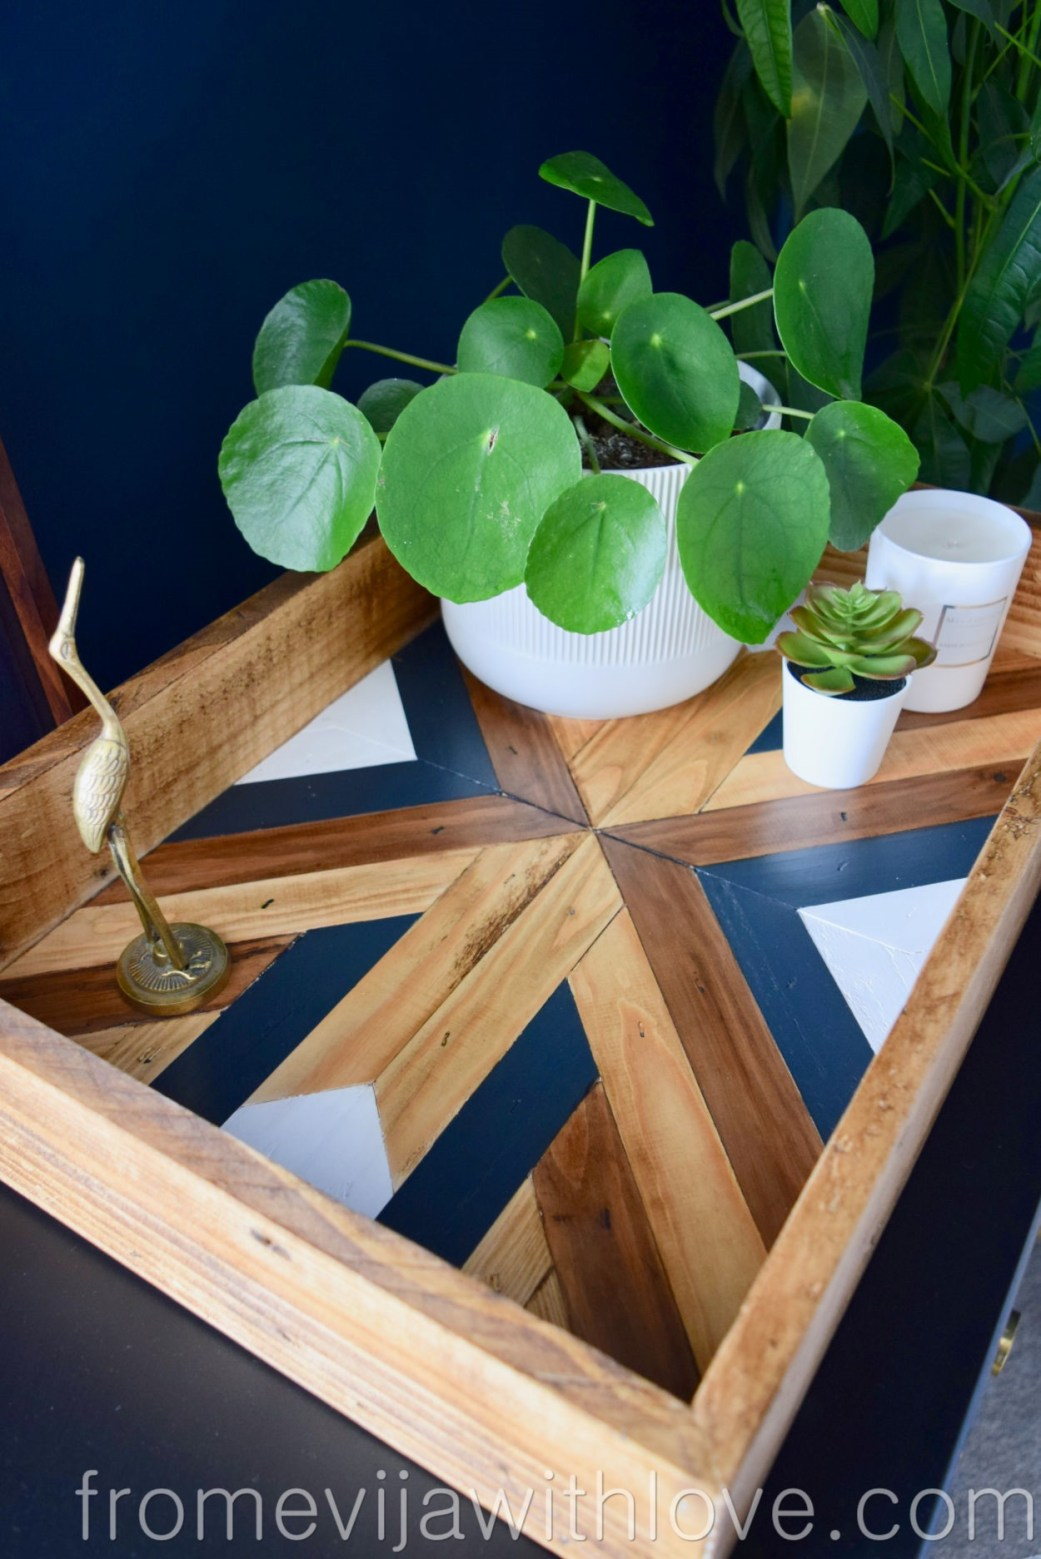 Decorative Geometric Wood Tray with various plants and candle